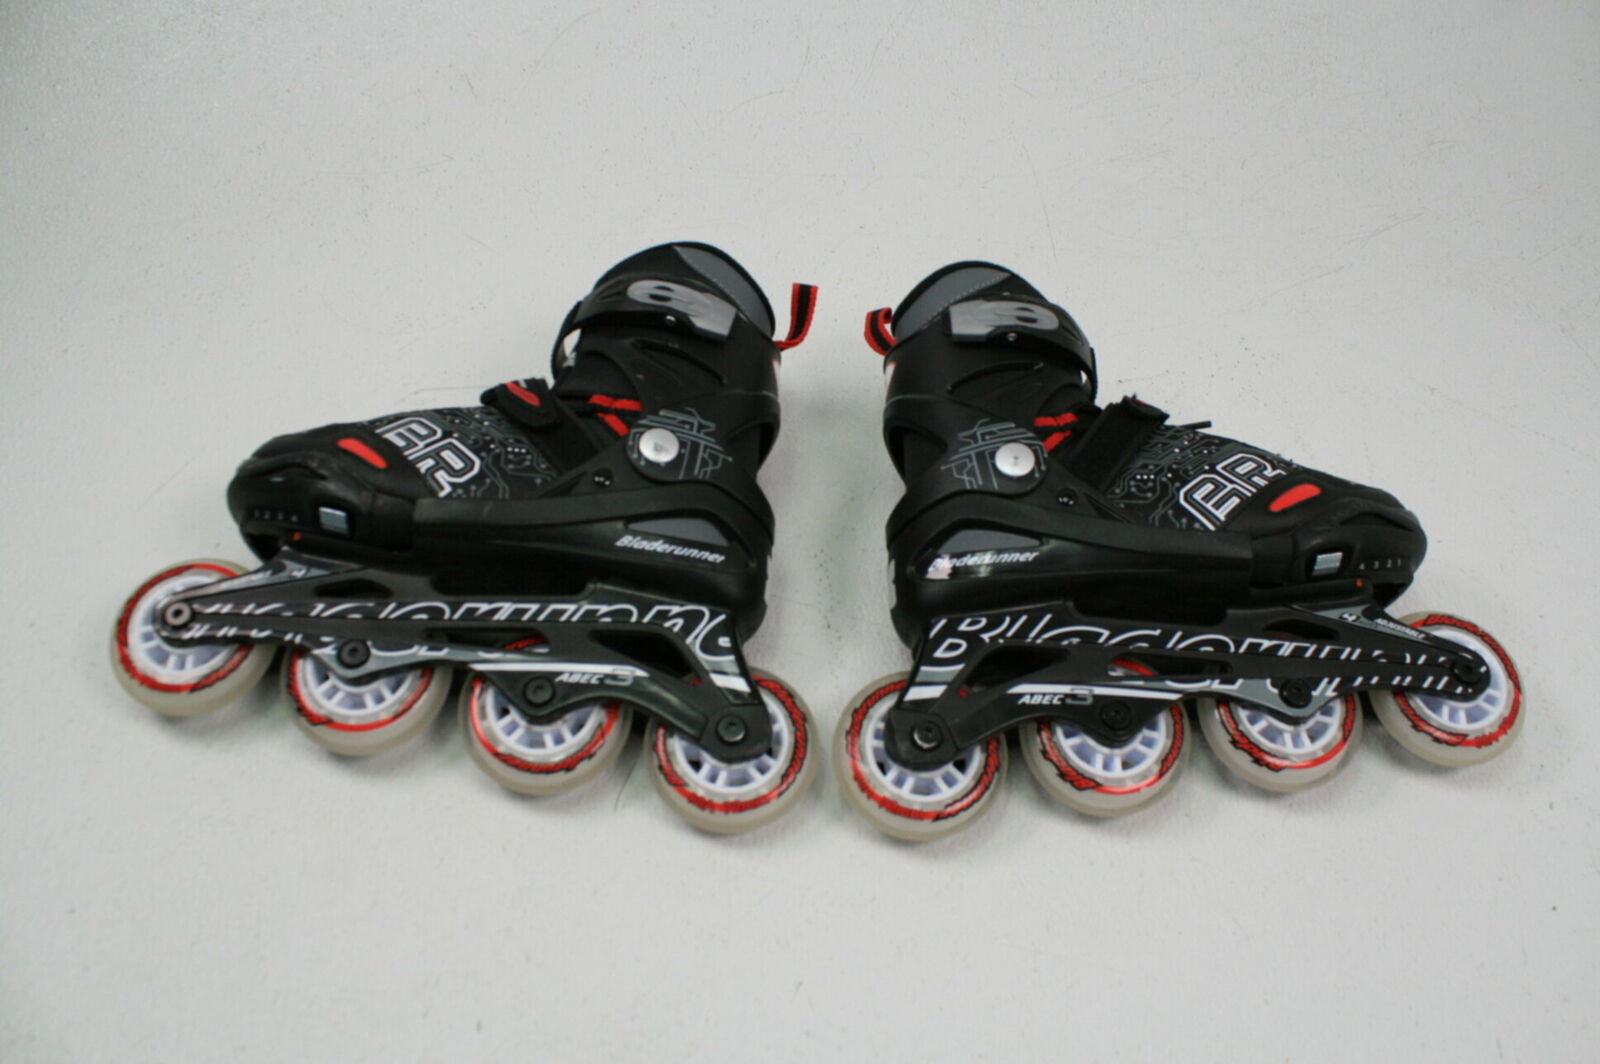 Black and Red Inline Skates Rollerblade Bladerunner Dynamo Jr Size Adjustable Hockey Inline Skate